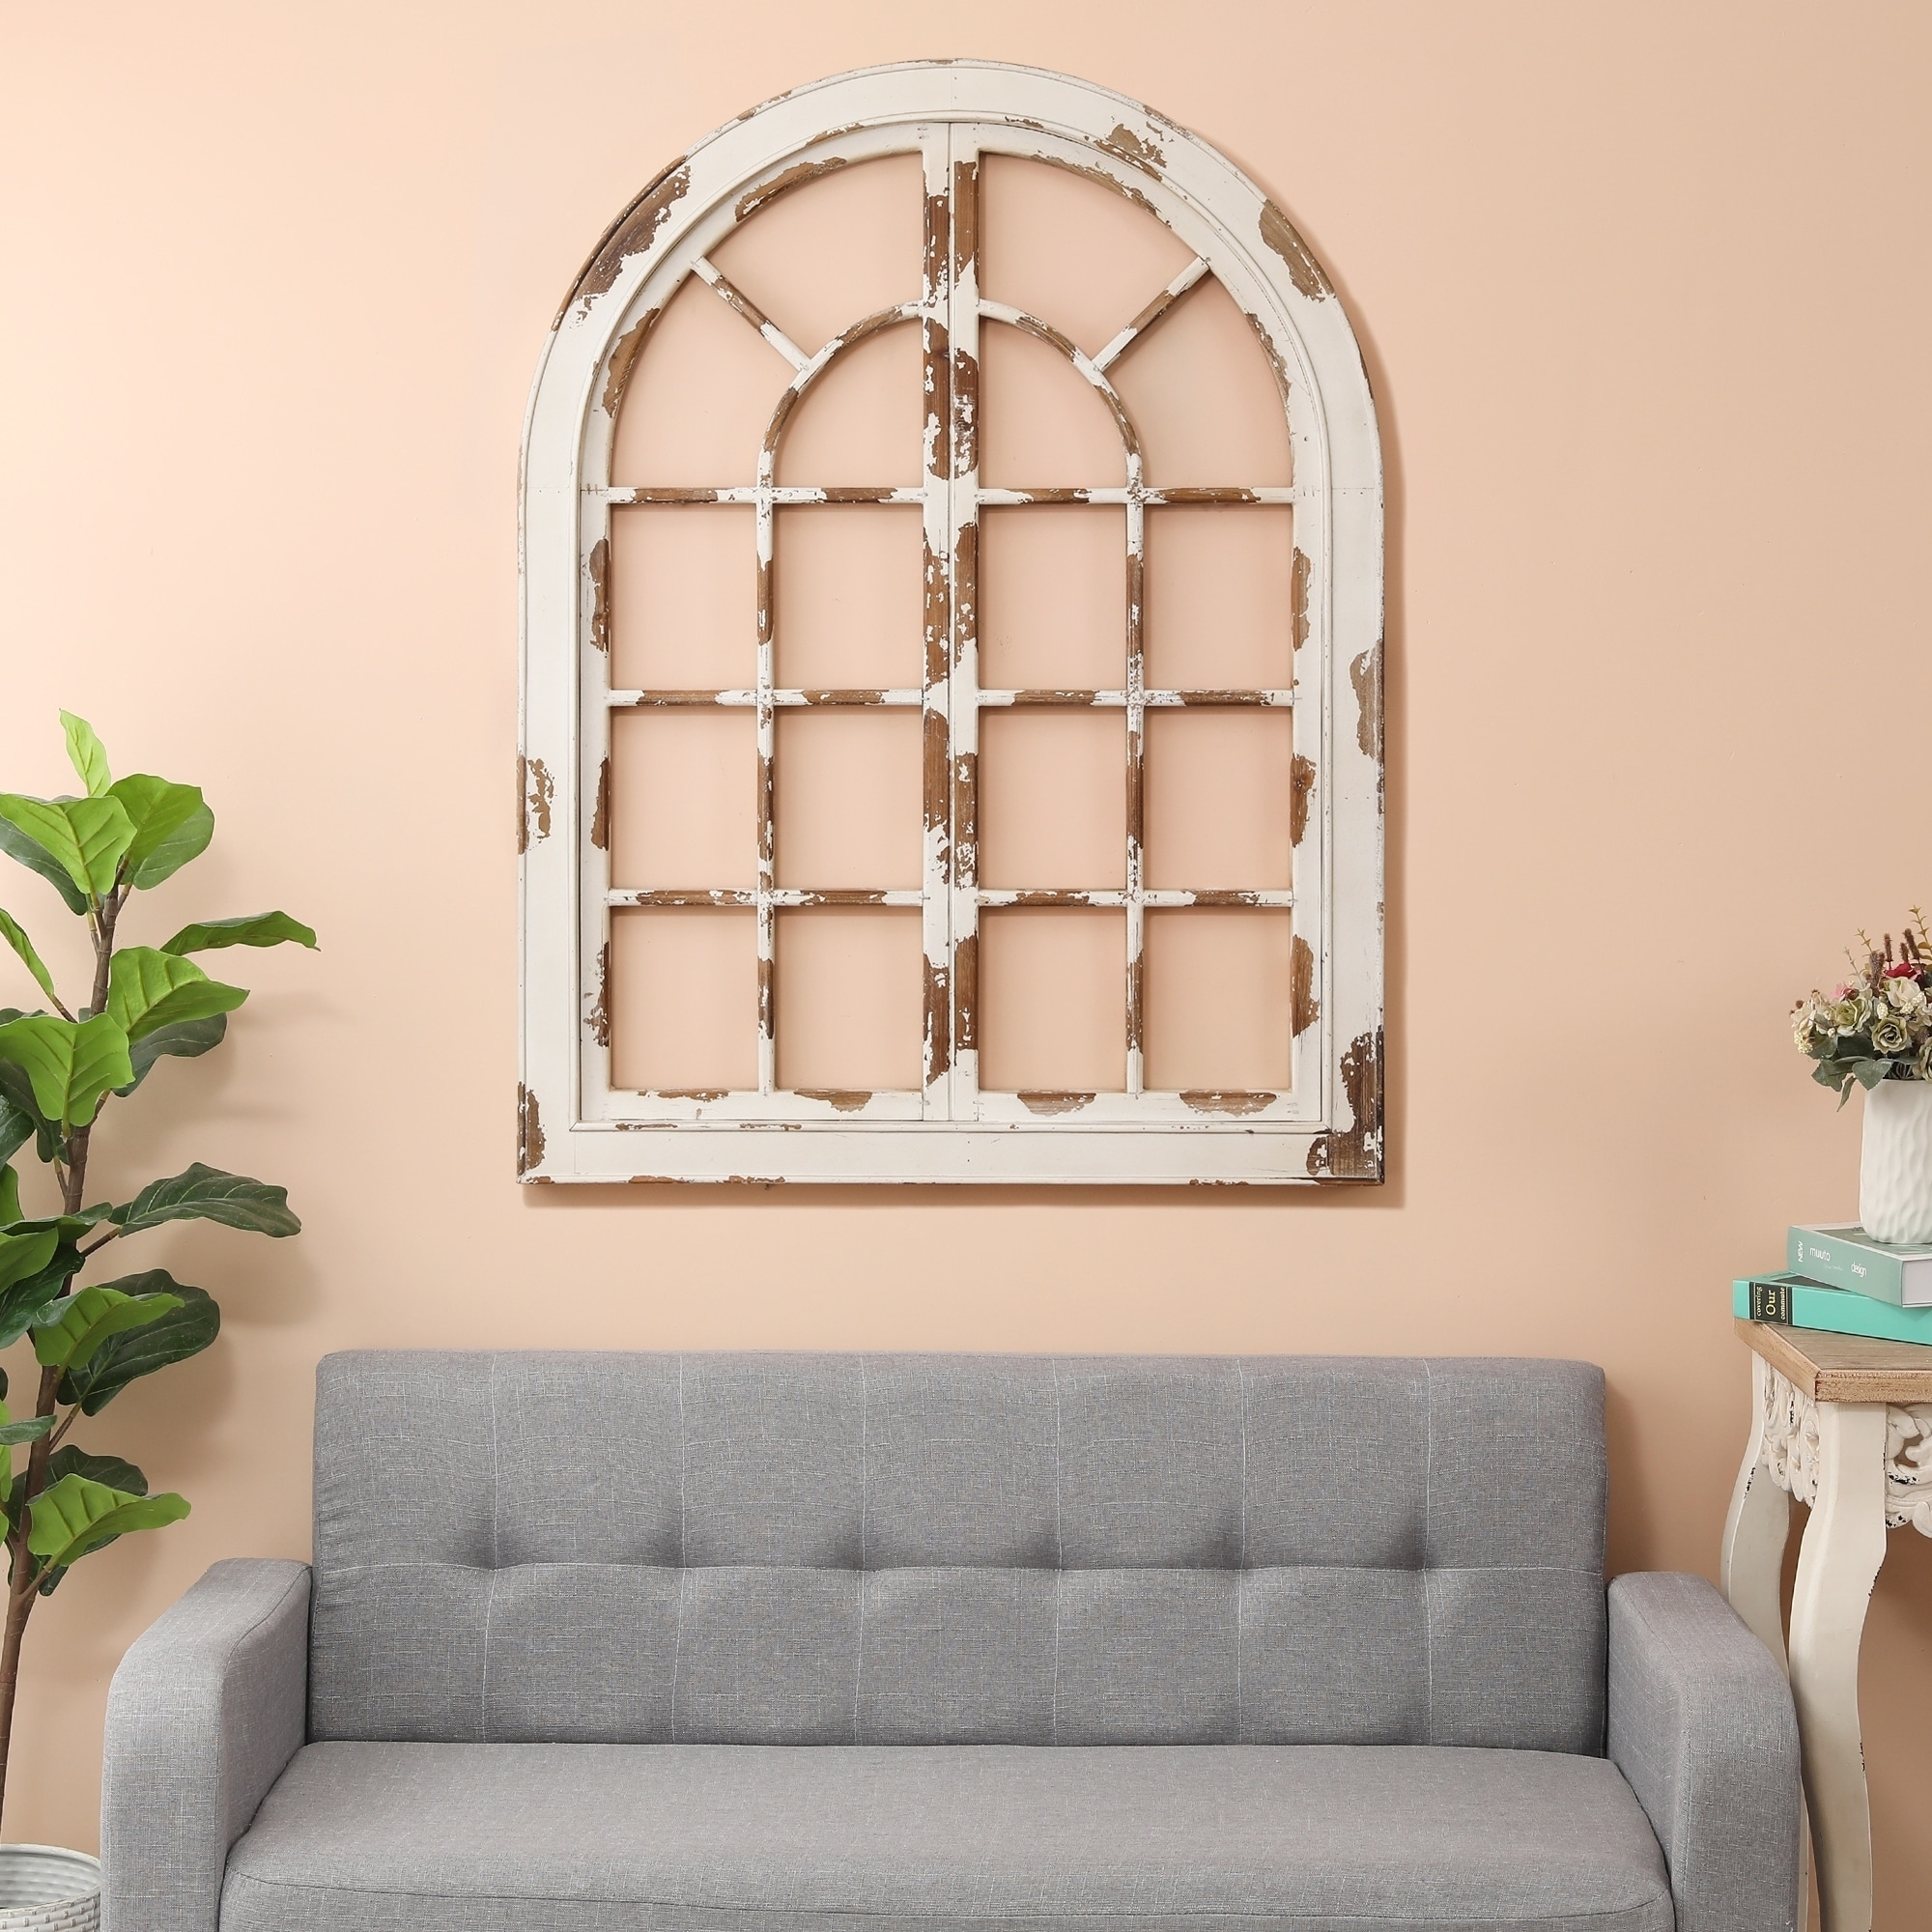 Distressed White Wood Arched Window Wall Decor Overstock 30964892